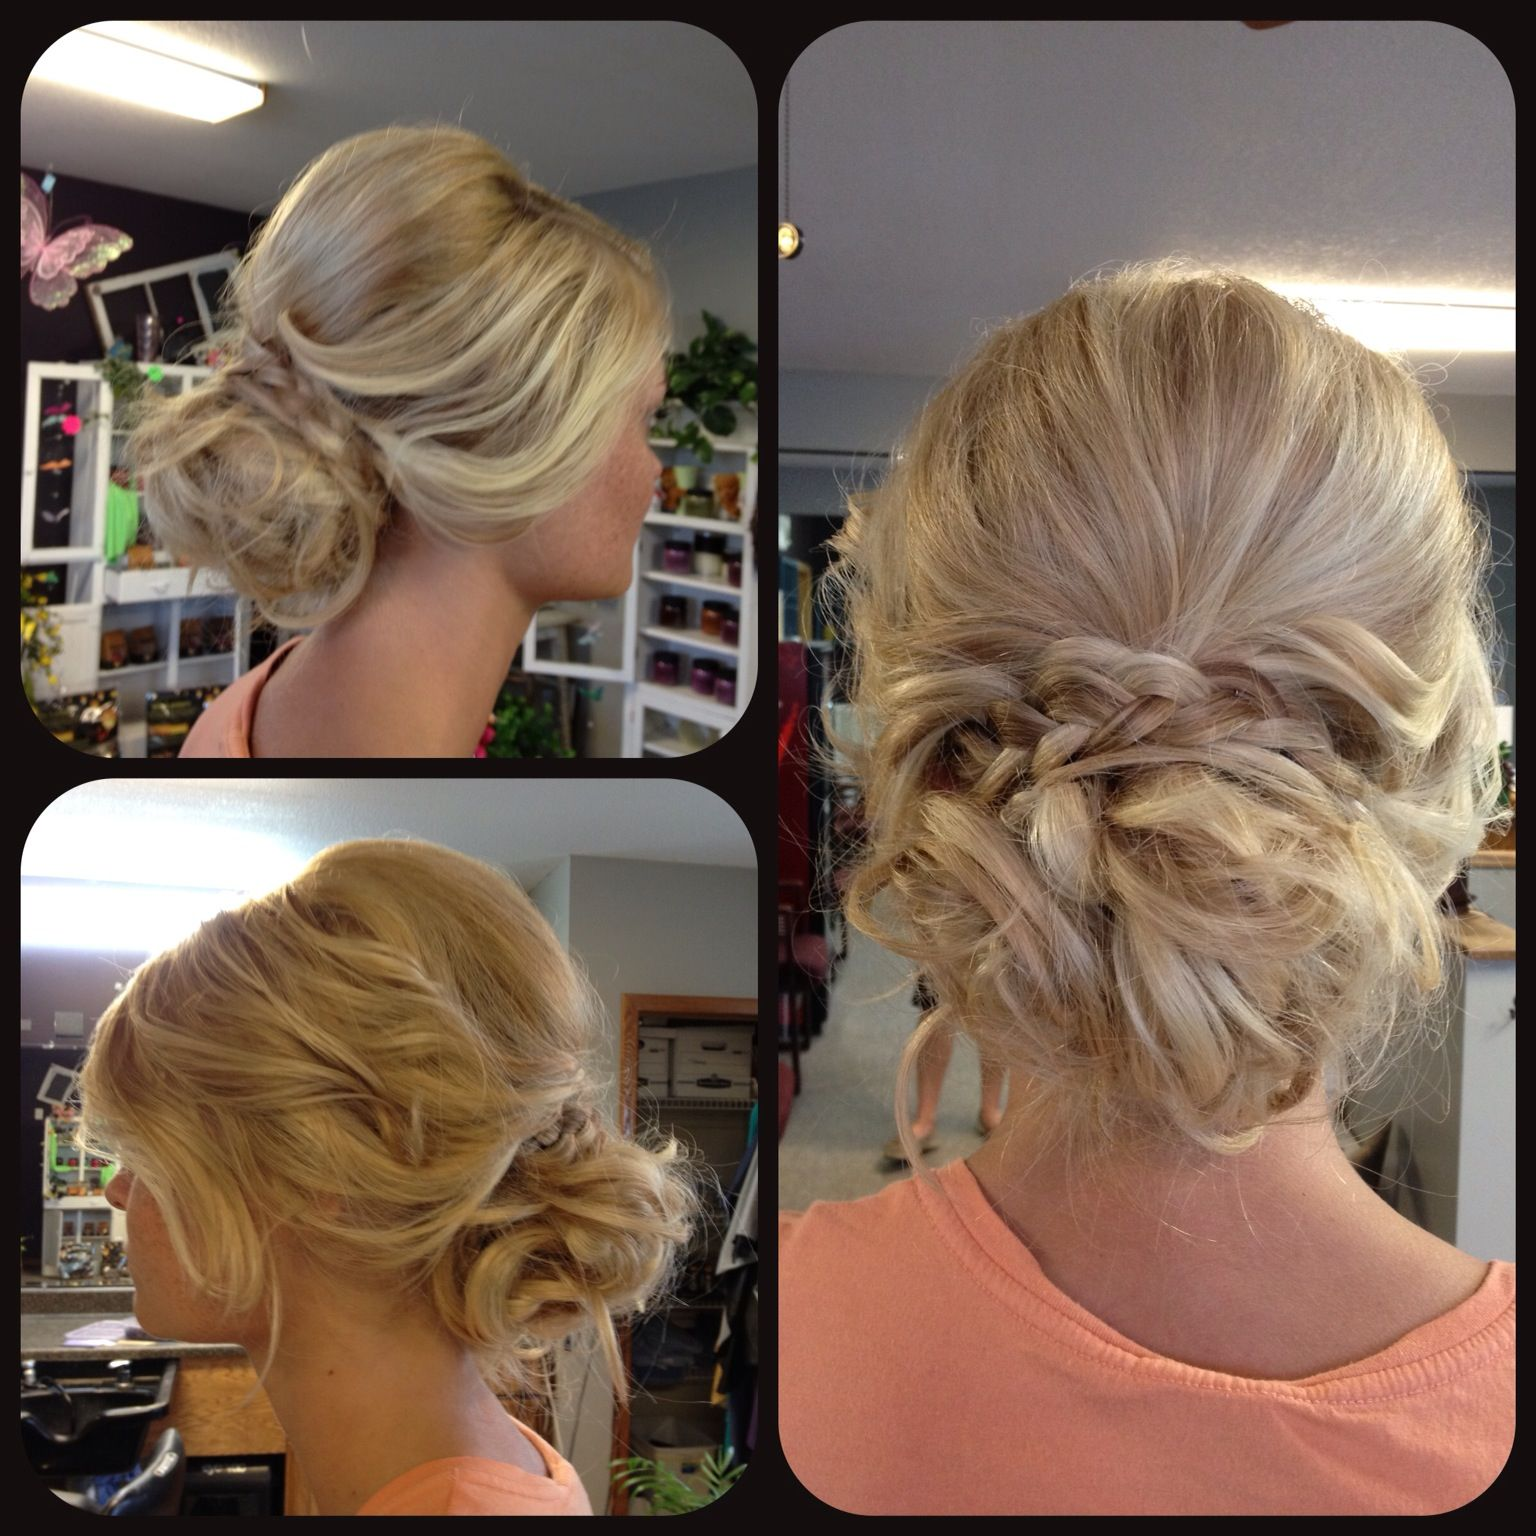 Updo messy braid updo for long hair prom hairstyles tumblr this updo ...